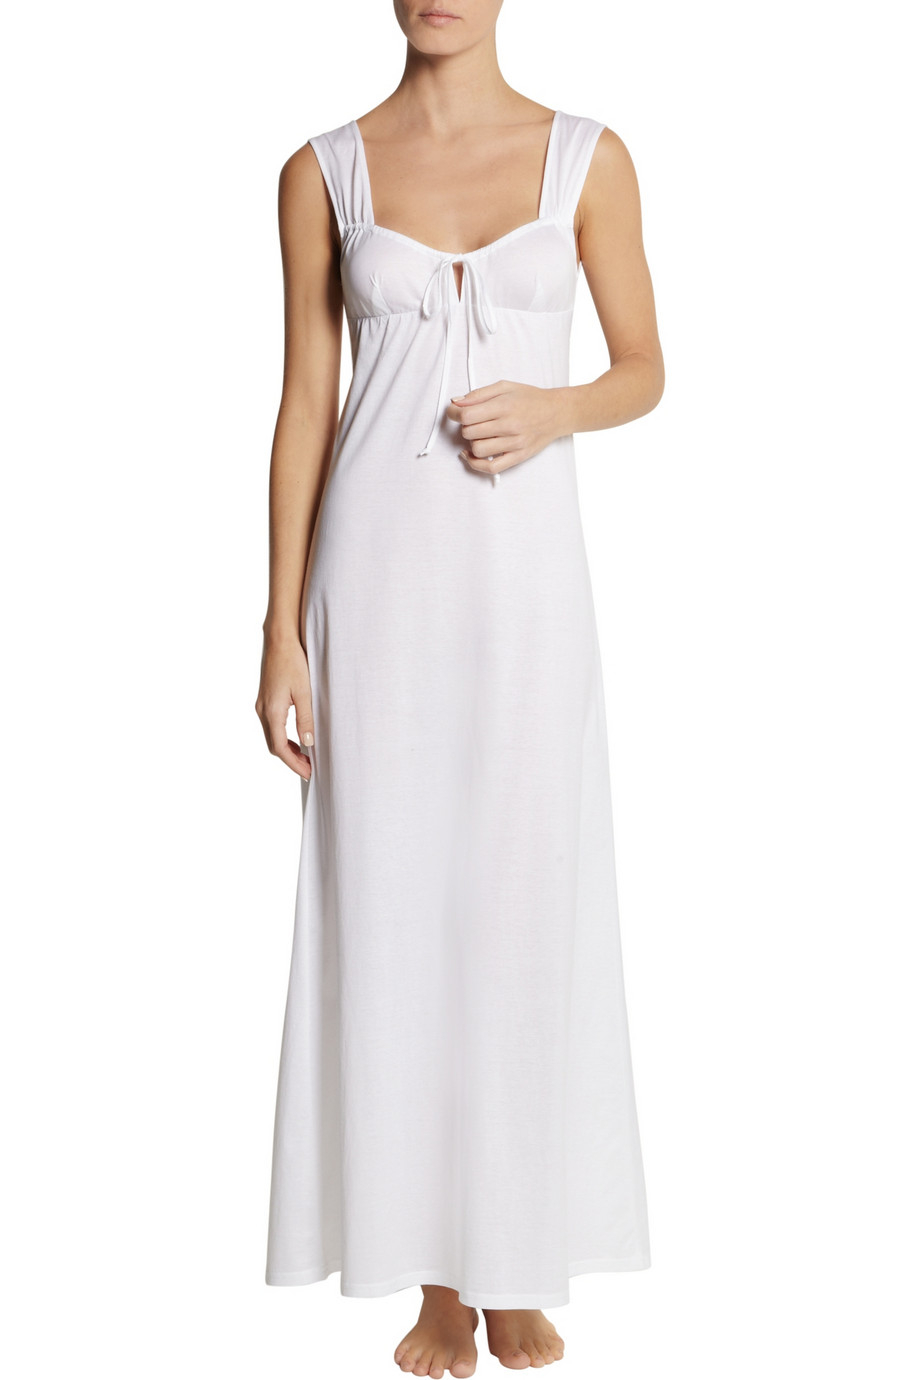 7a079a80fe Lyst - Bodas Semi-Sheer Cotton-Jersey Nightgown in White